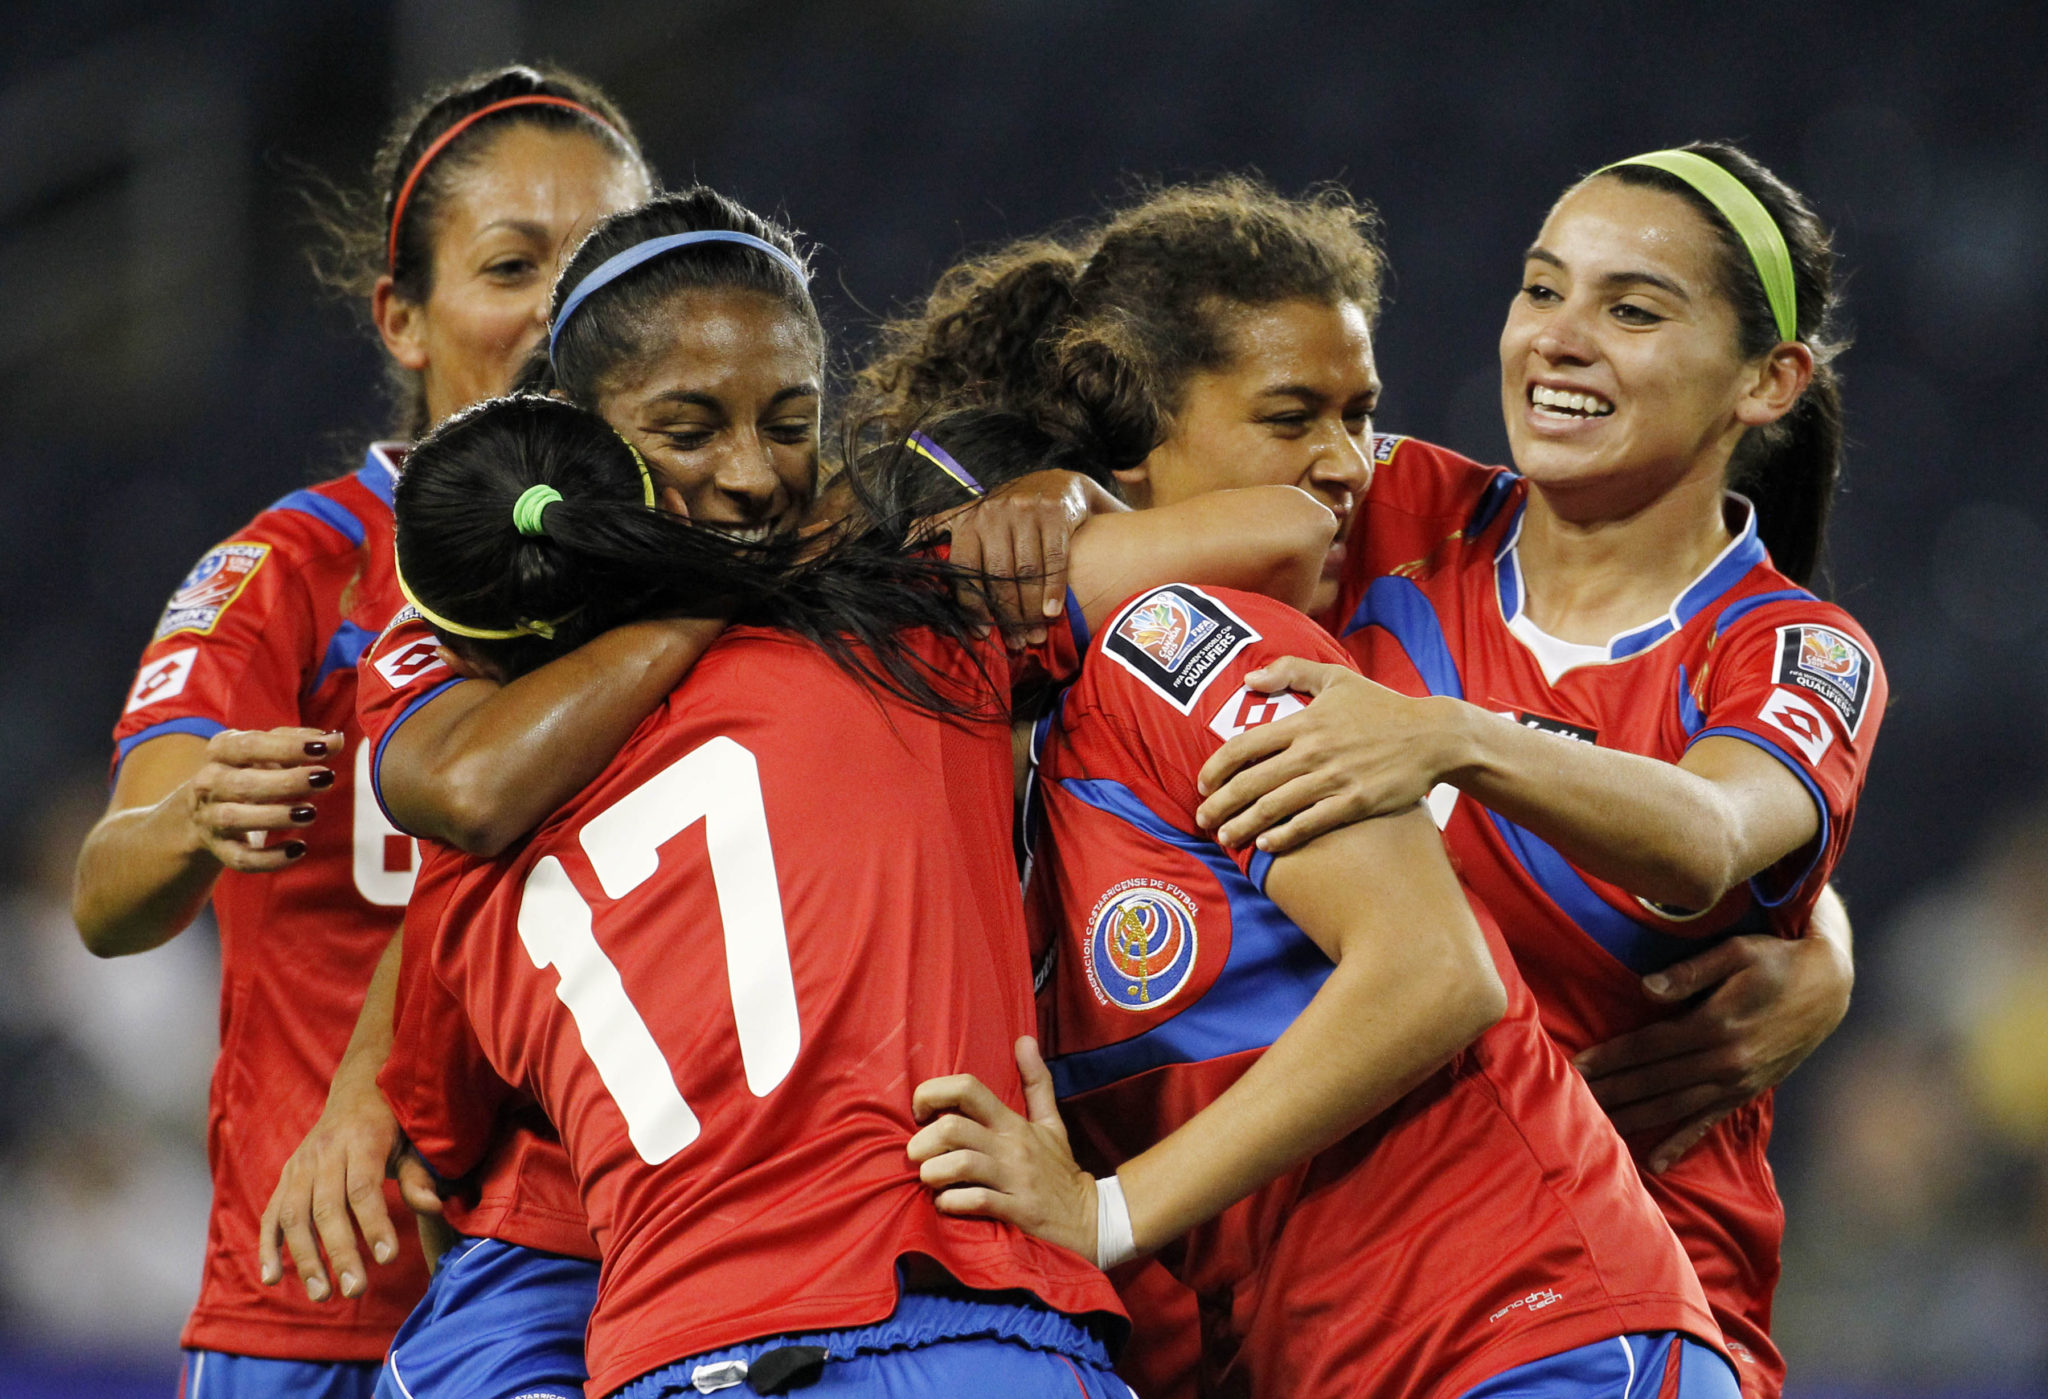 Costa Rica pulled off a huge win over Mexico to open World Cup qualifying on Thursday. (AP Photo)